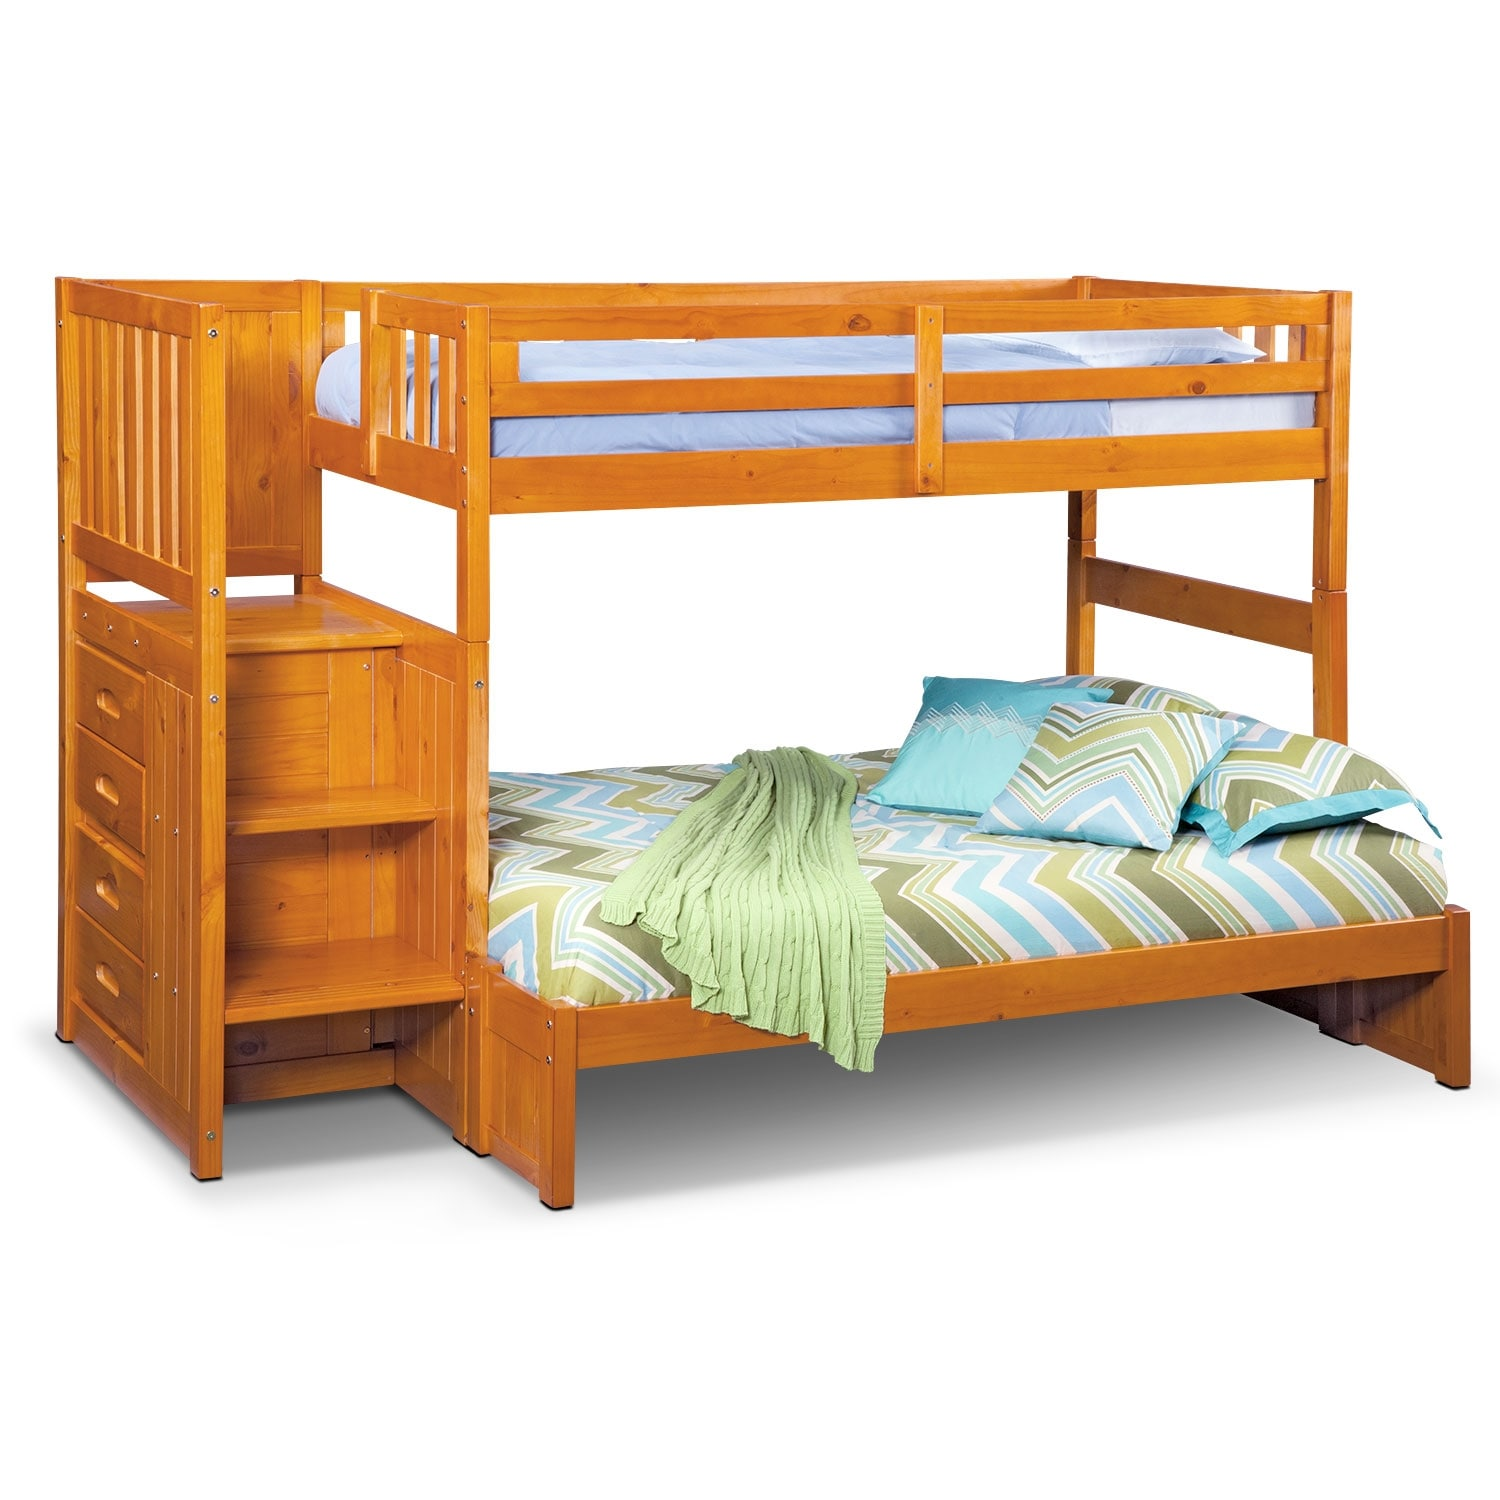 Ranger Pine Twin/Full Bunk Bed w/ Stairs and 4-Drawer Storage